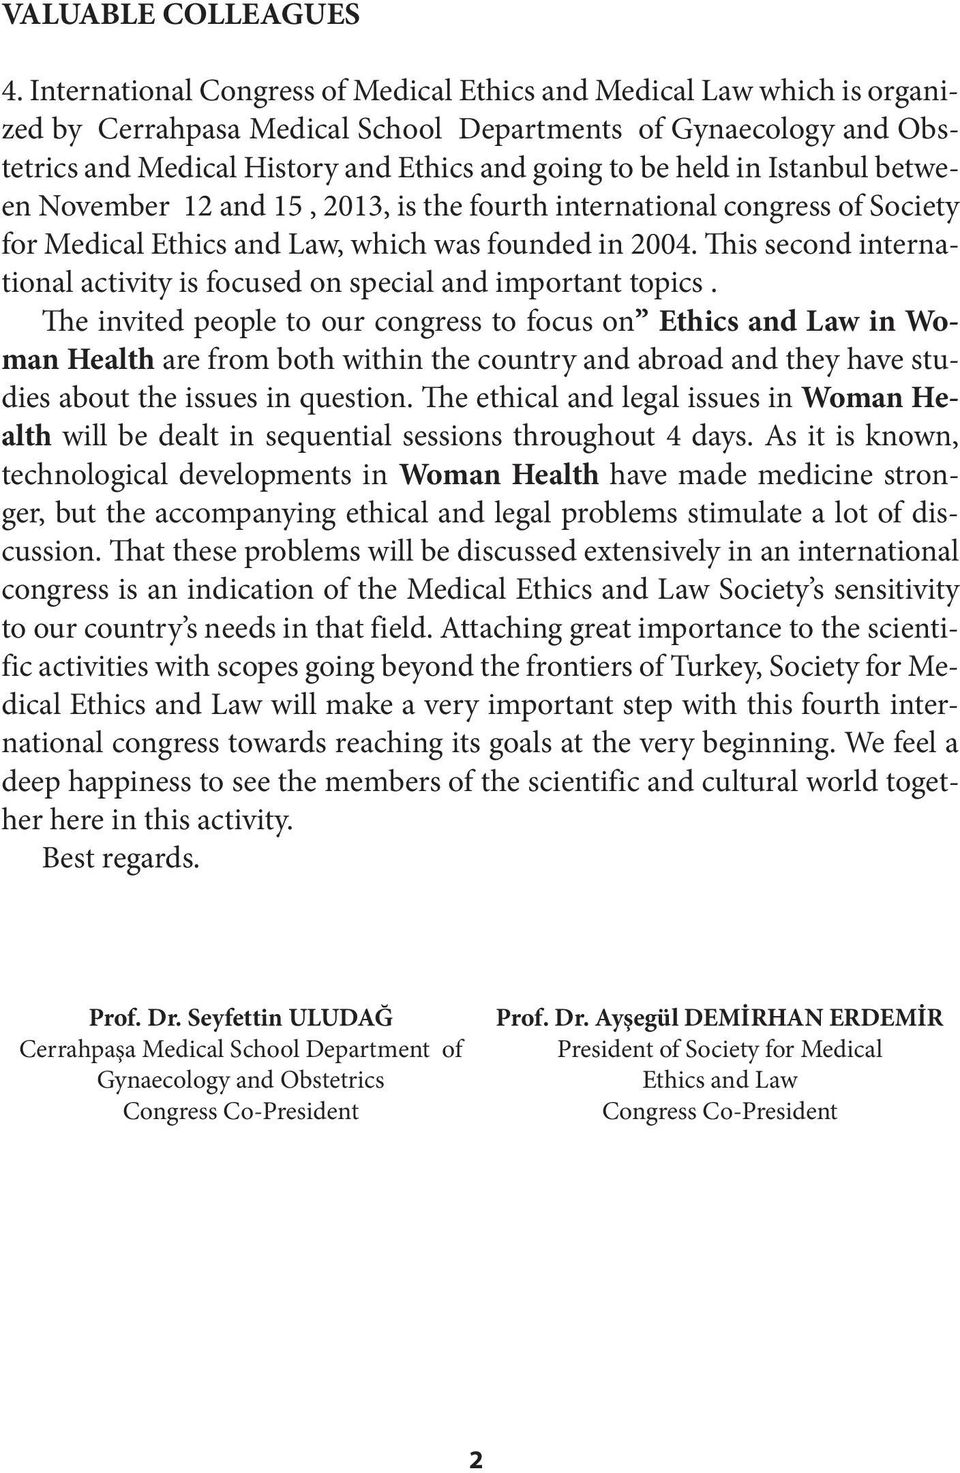 in Istanbul between November 12 and 15, 2013, is the fourth international congress of Society for Medical Ethics and Law, which was founded in 2004.